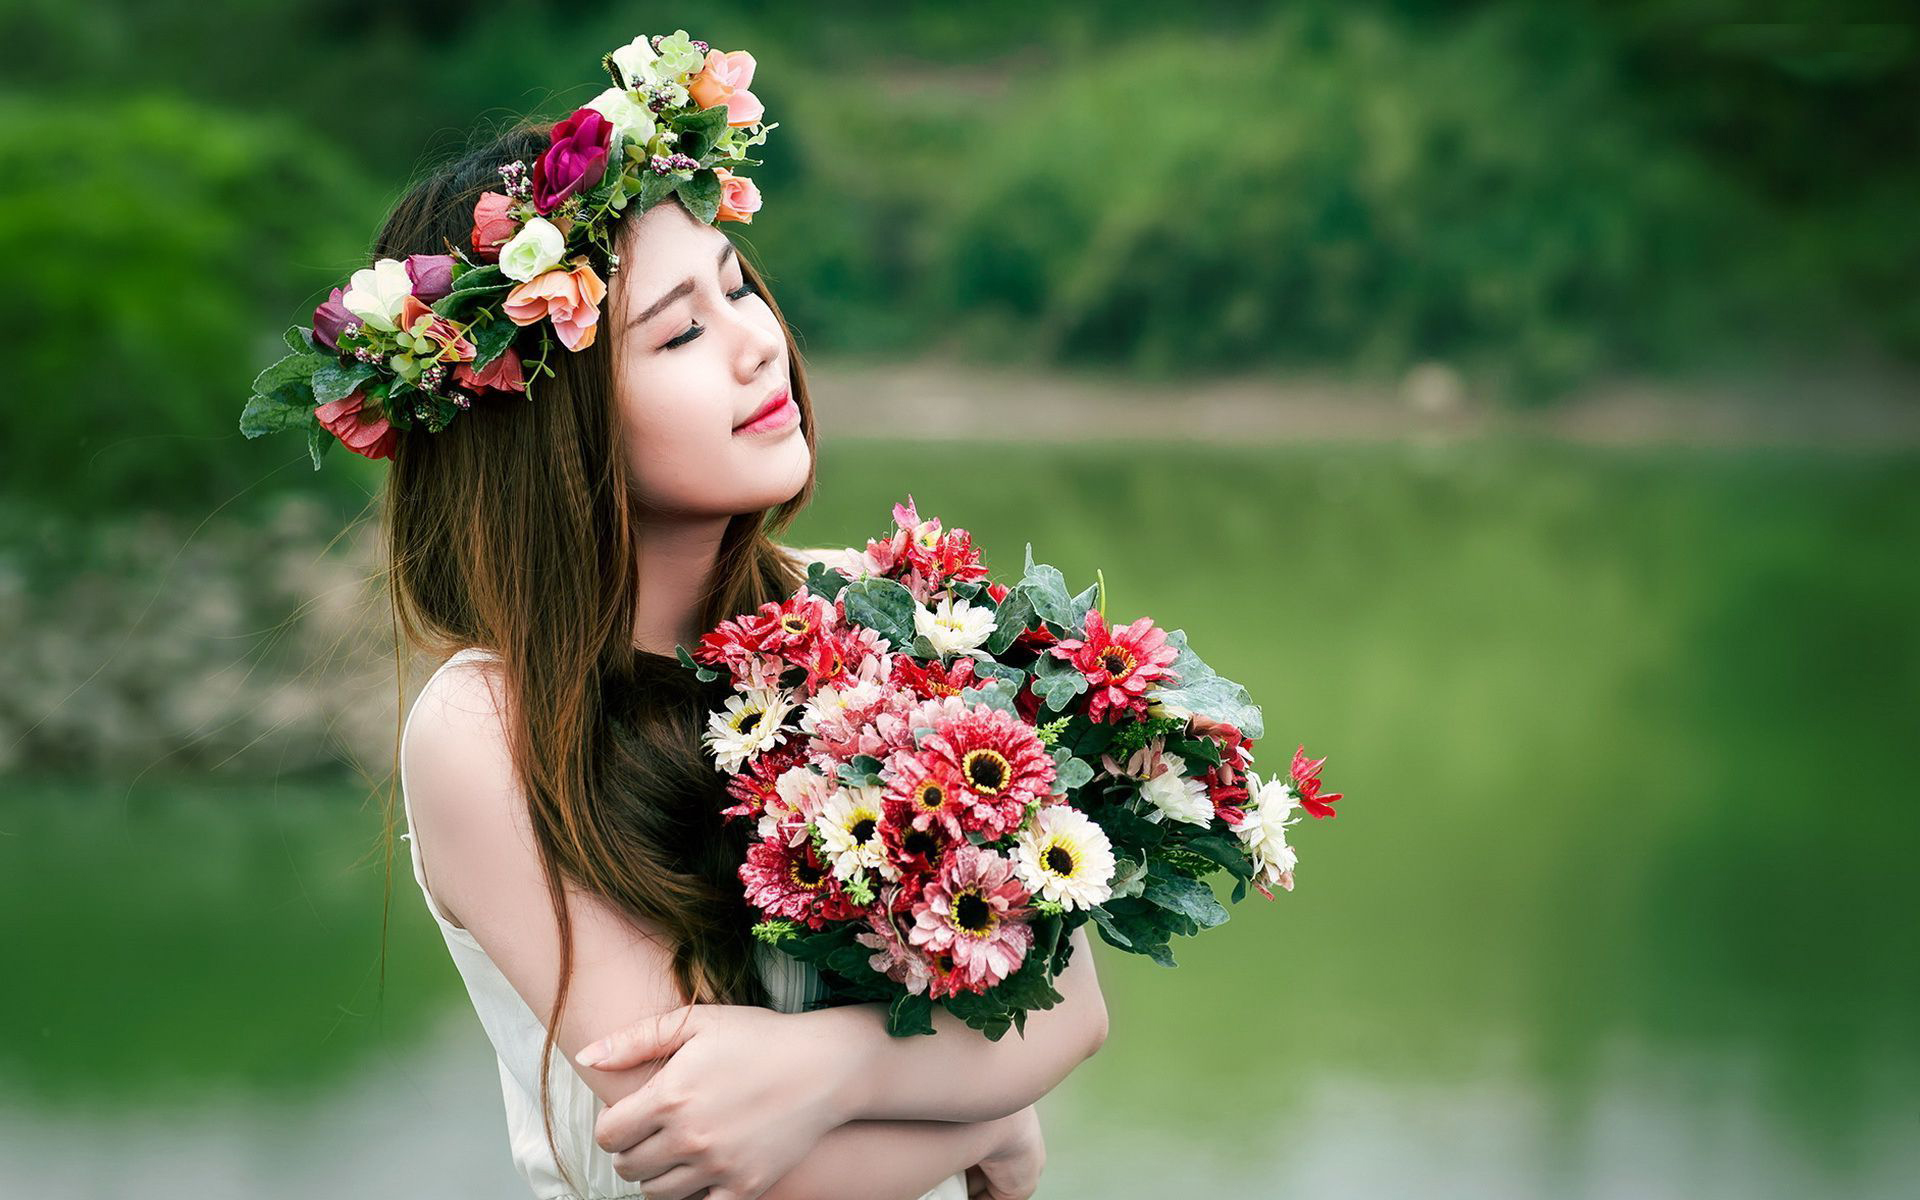 Girls with flowers photo